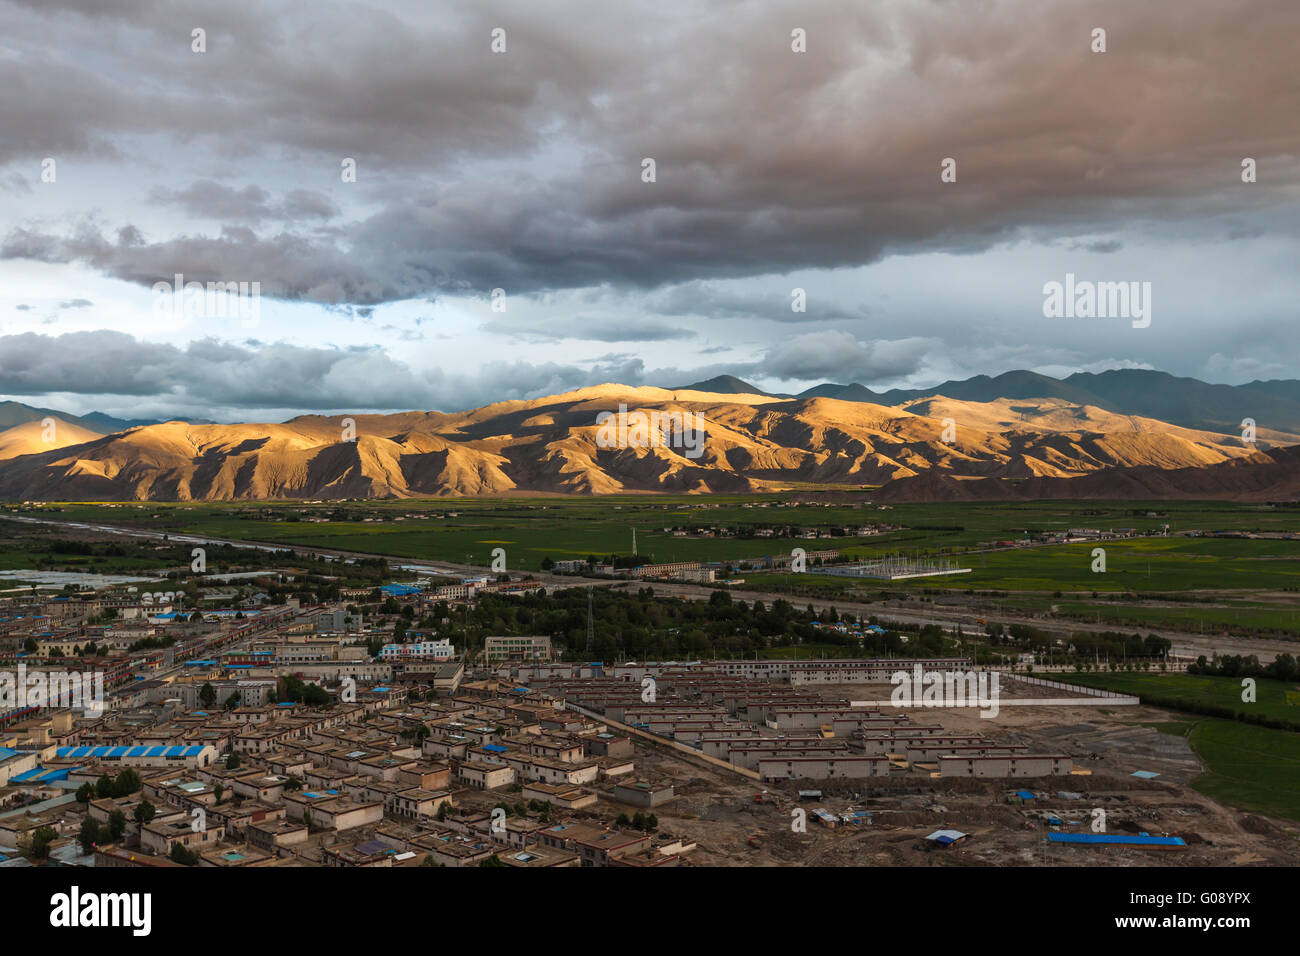 Aerial view of Gyantse county from top of Zongshan fort, Tibet, China - Stock Image